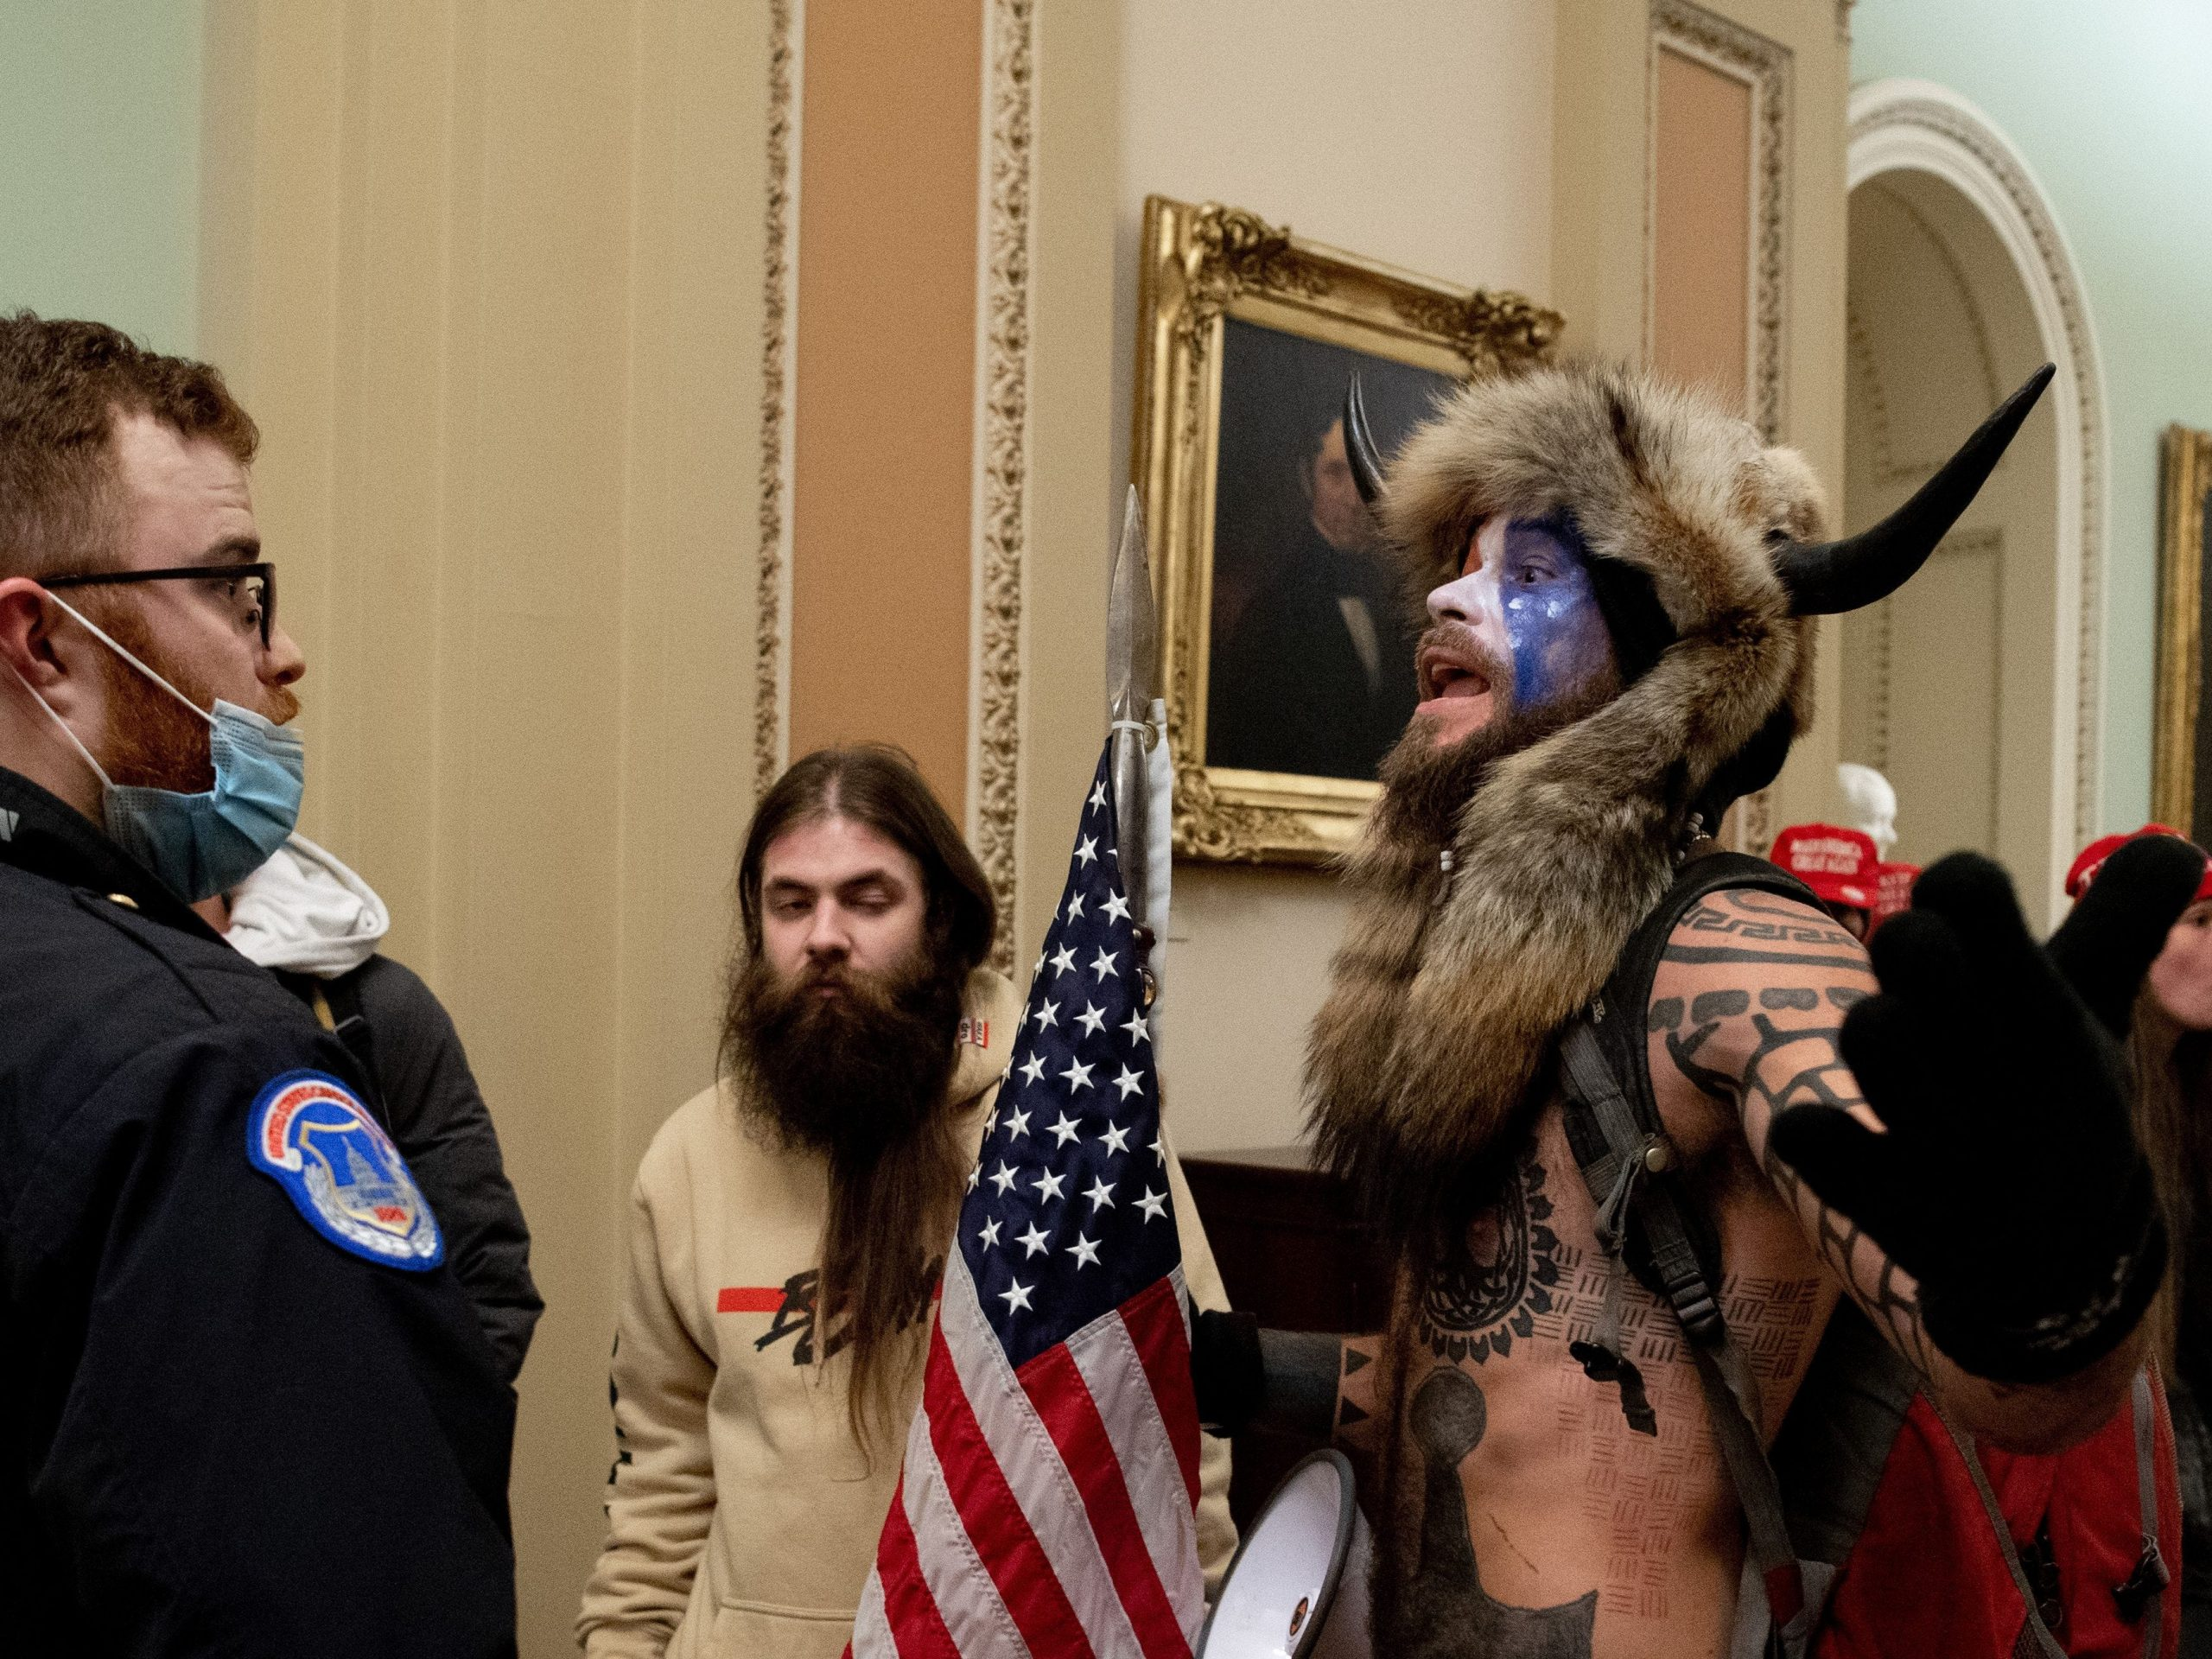 Attorney for the 'Q Shaman' who stormed the Capitol in a fur headdress with horns says his client feels 'duped' after Trump did now not pardon him